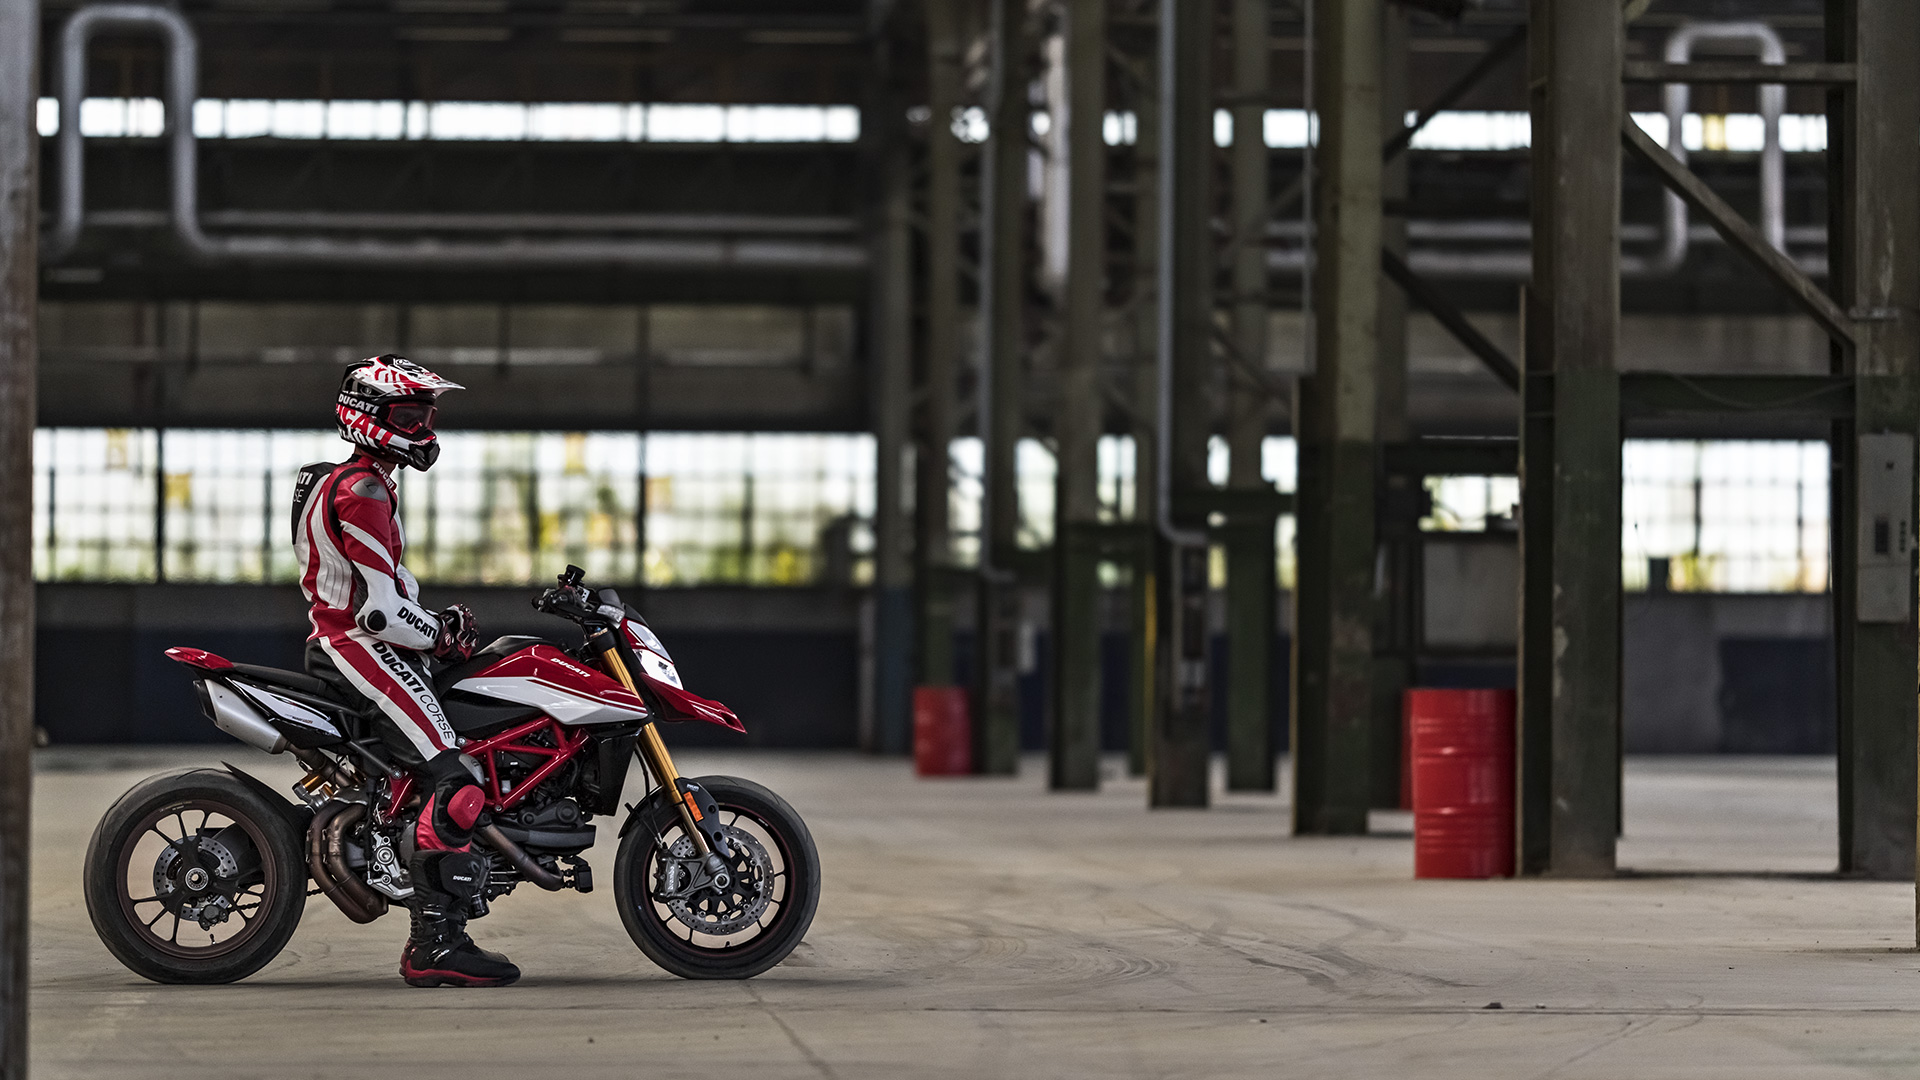 New ducati hypermotard 950 pure fun, endless adrenalin ducati monster s2r 1000 game on!